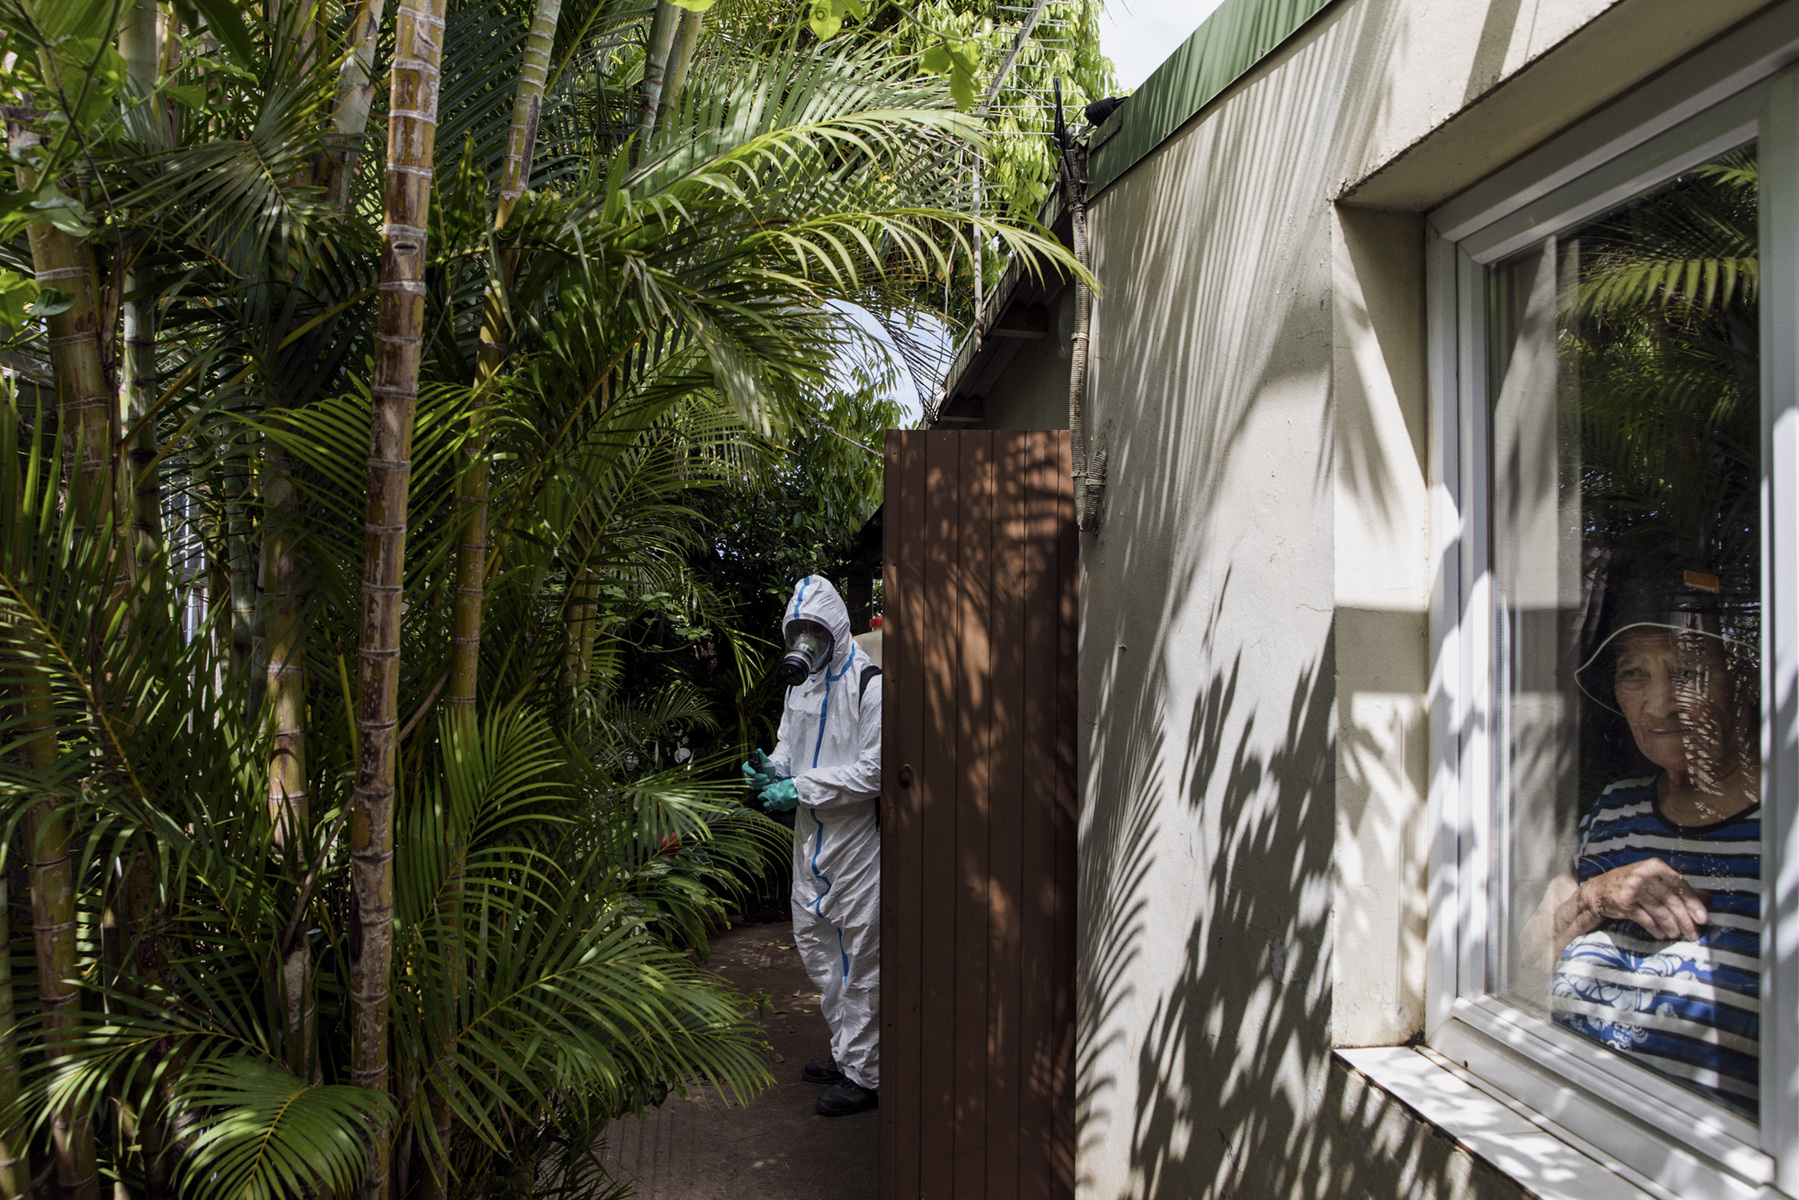 Adrienne Surprenant - 16/11/2018, Piton Saint-Leu, La Réunion (France) — Dominique Tarley, 44 years old, interim with the governmental health agency ARS Indian Ocean, sprays deltaméthrine in gardens of Piton Saint-Leu. A dengue case was confirmed nearby. The ARS sprays small doses of this insecticide in a specific perimeter next to cases, to stop the adult mosquitoes to transmit dengue. They are carefully dosing and testing to avoid creating a resistance to the insecticide amongst the mosquito's population. The ARS Indian Ocean is a French governmental agency leading the response to epidemics of arboviruses or national notifiable diseases in France overseas territories, such as La Reunion.